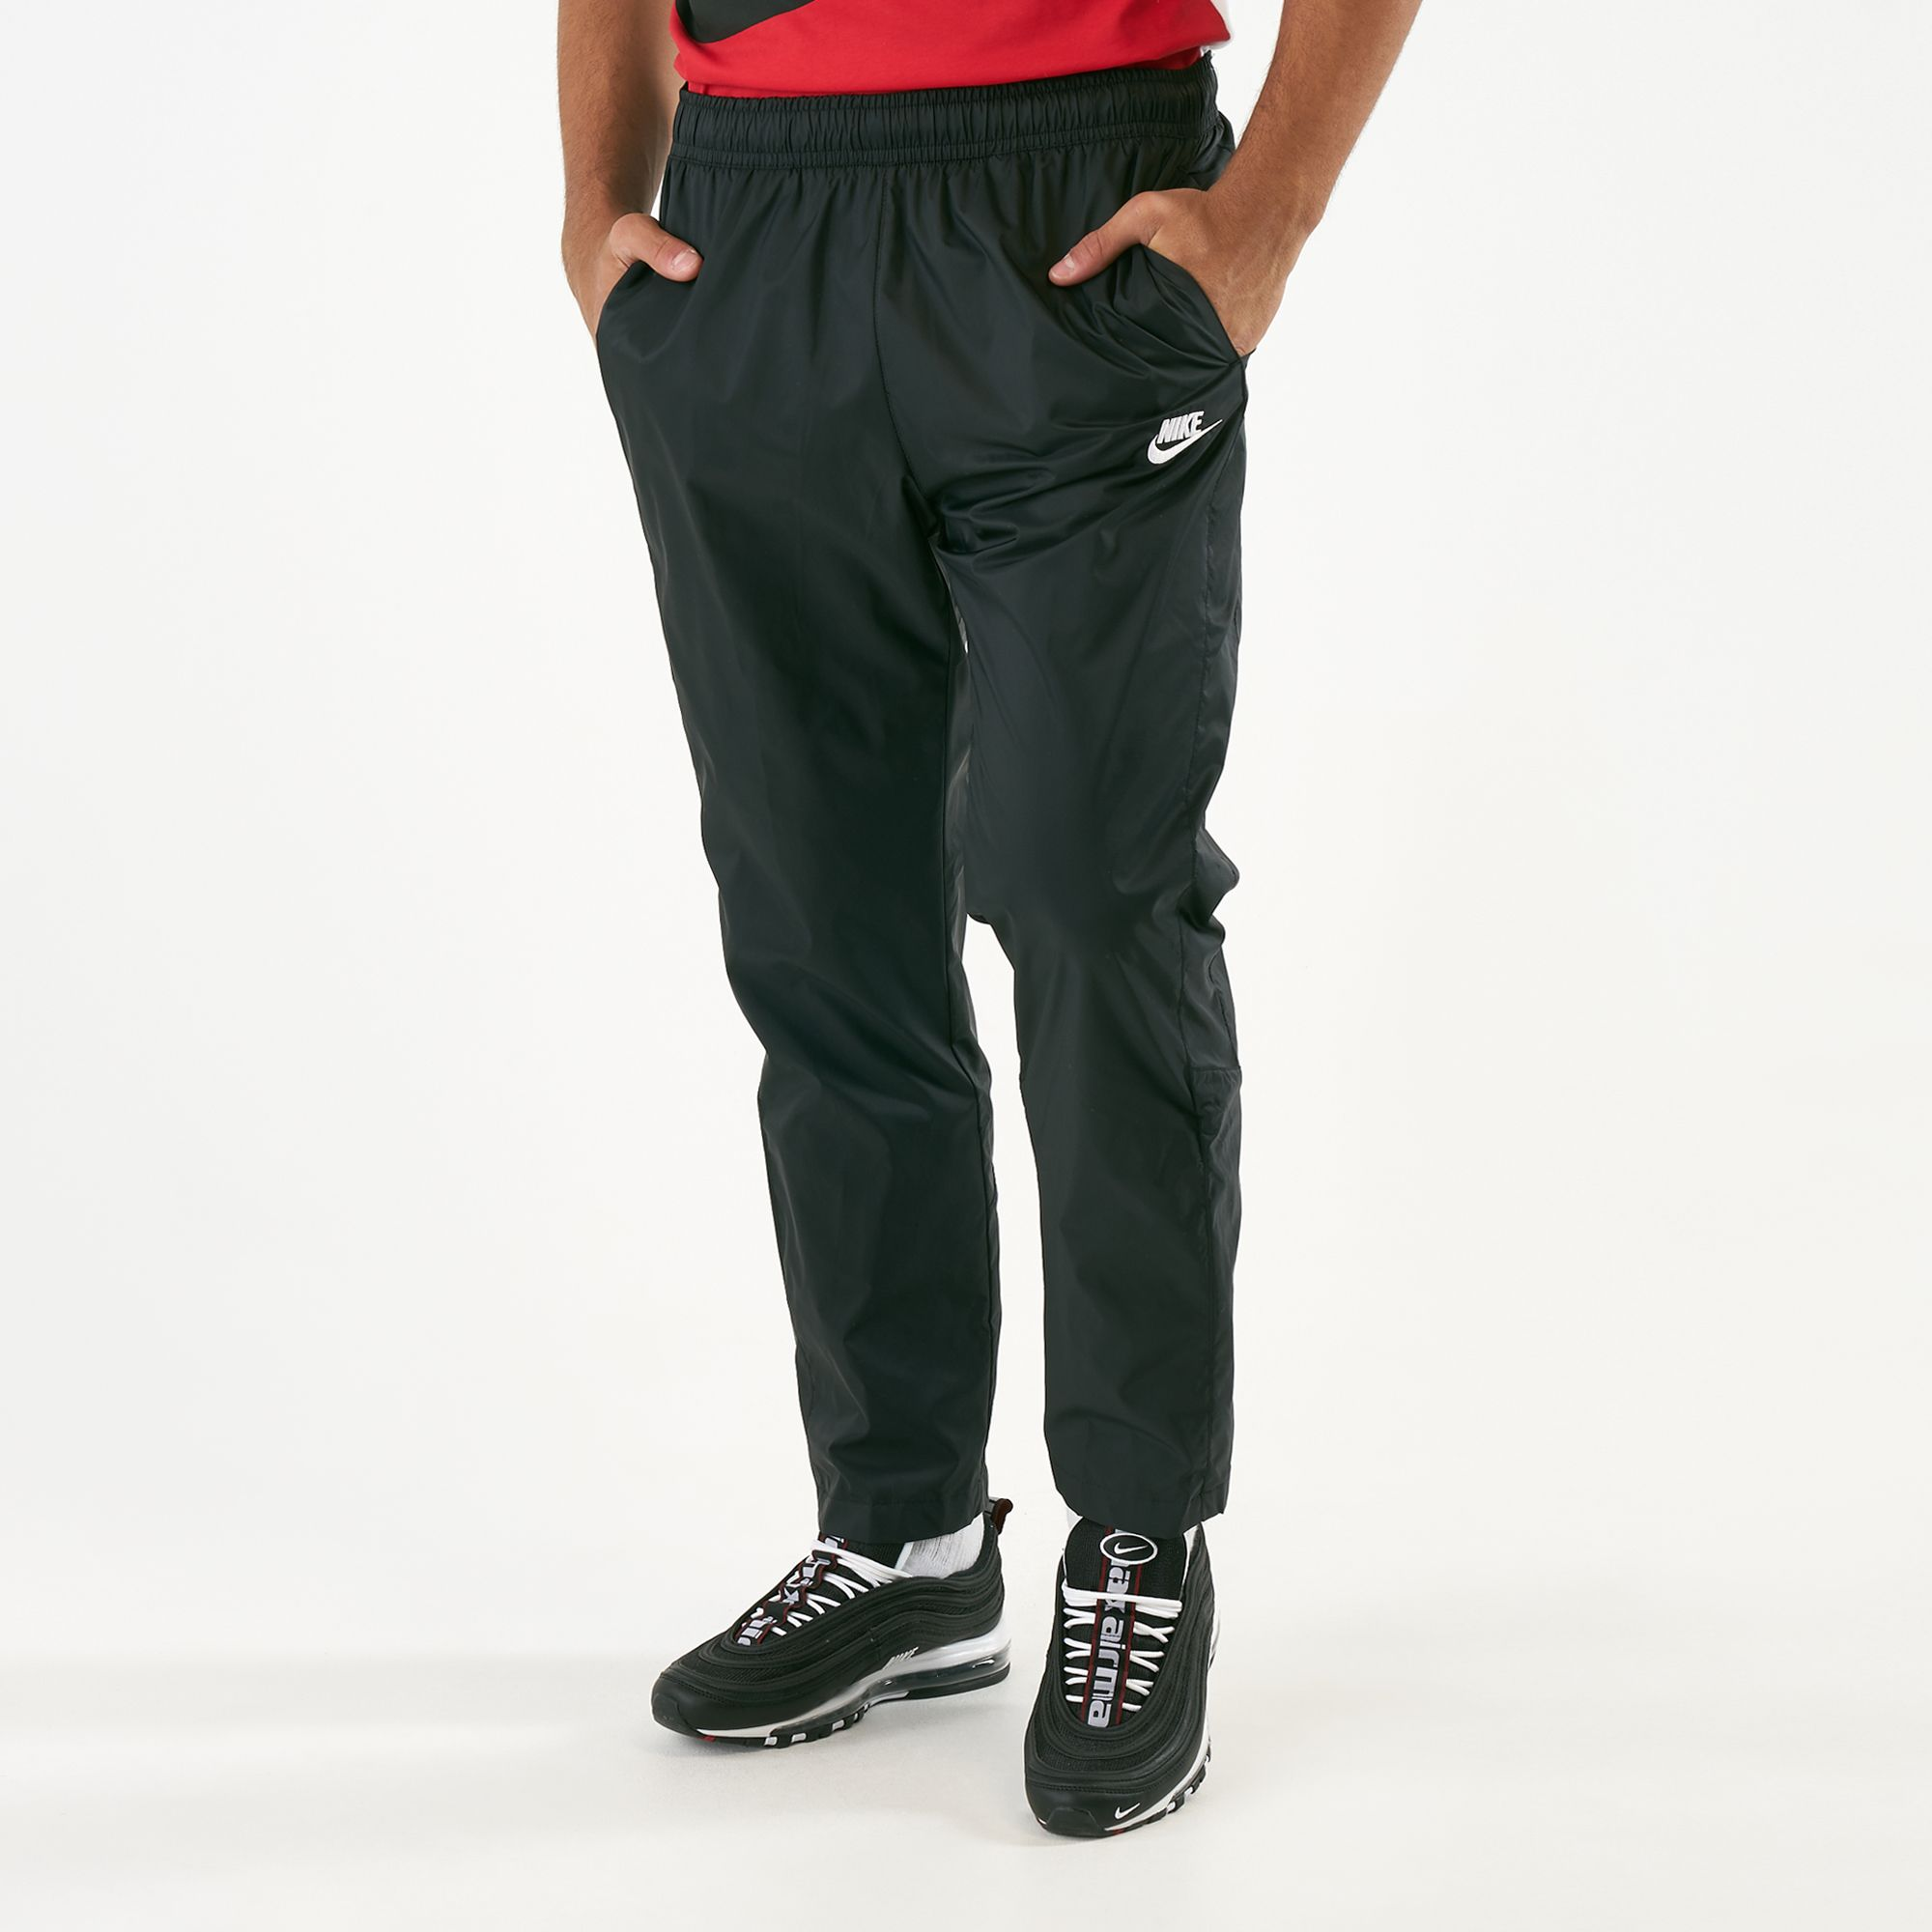 New Nike Boy/'s Core Woven Active Pant